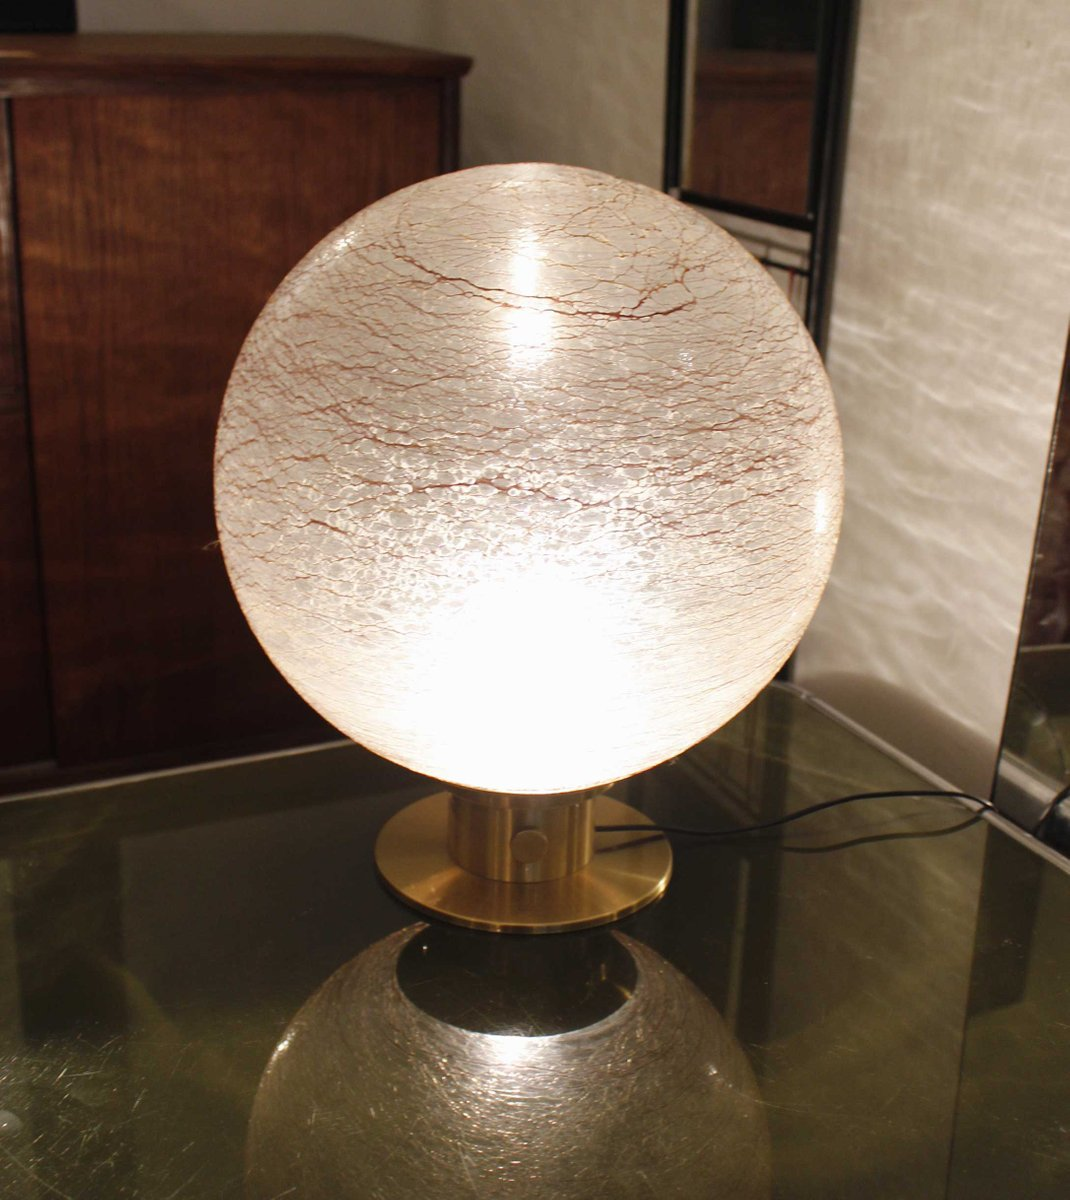 Vintage crystal table lamp - Vintage Crystal Table Lamp With Brass Base 3 582 00 Price Per Piece